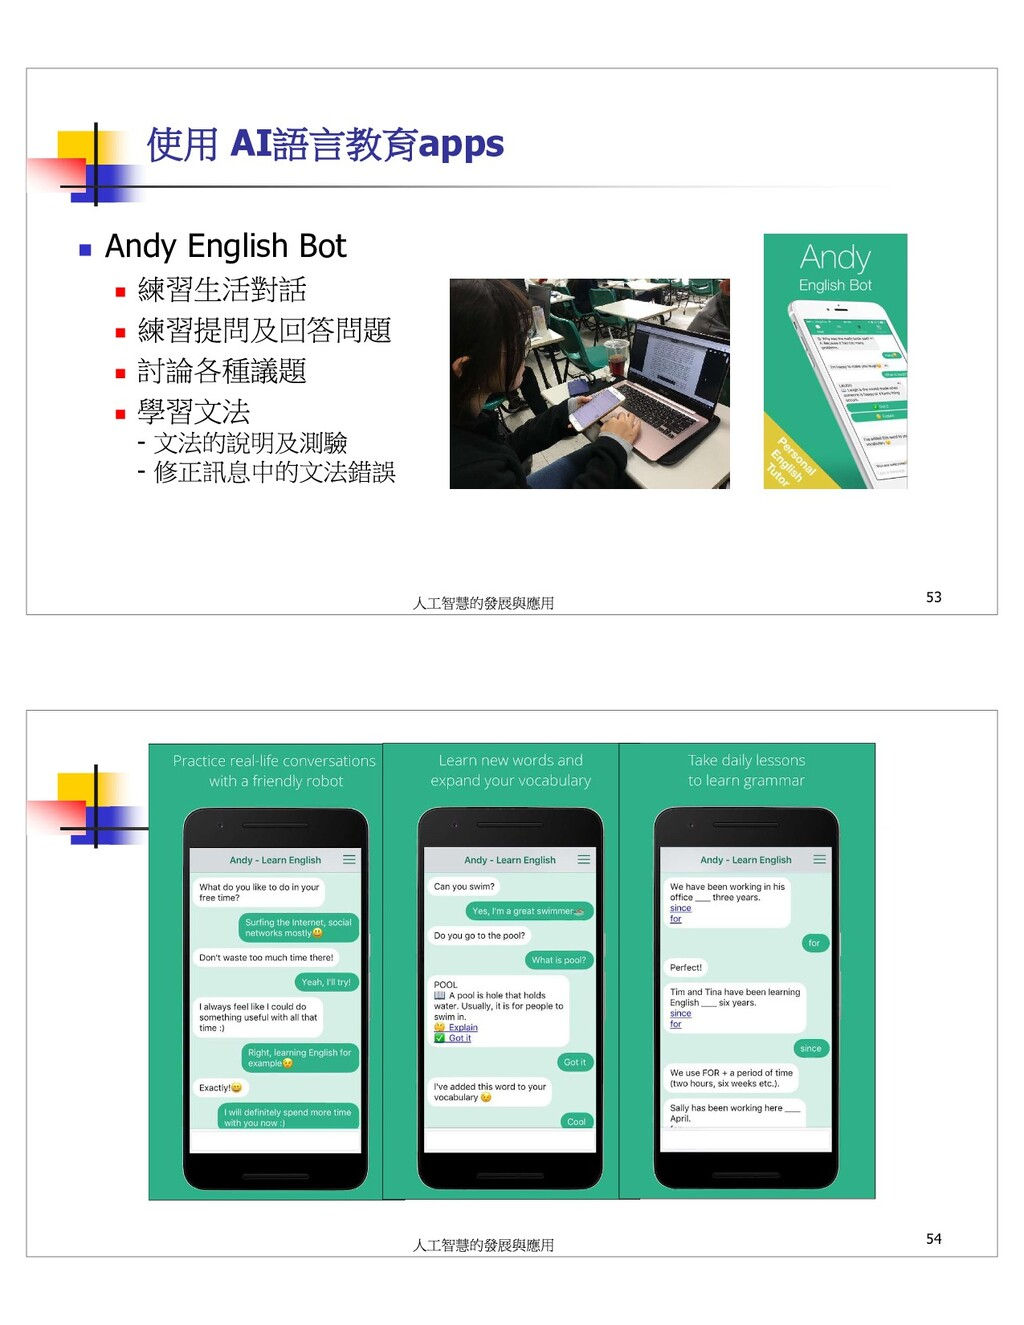 AI apps Andy English Bot - - 53 54